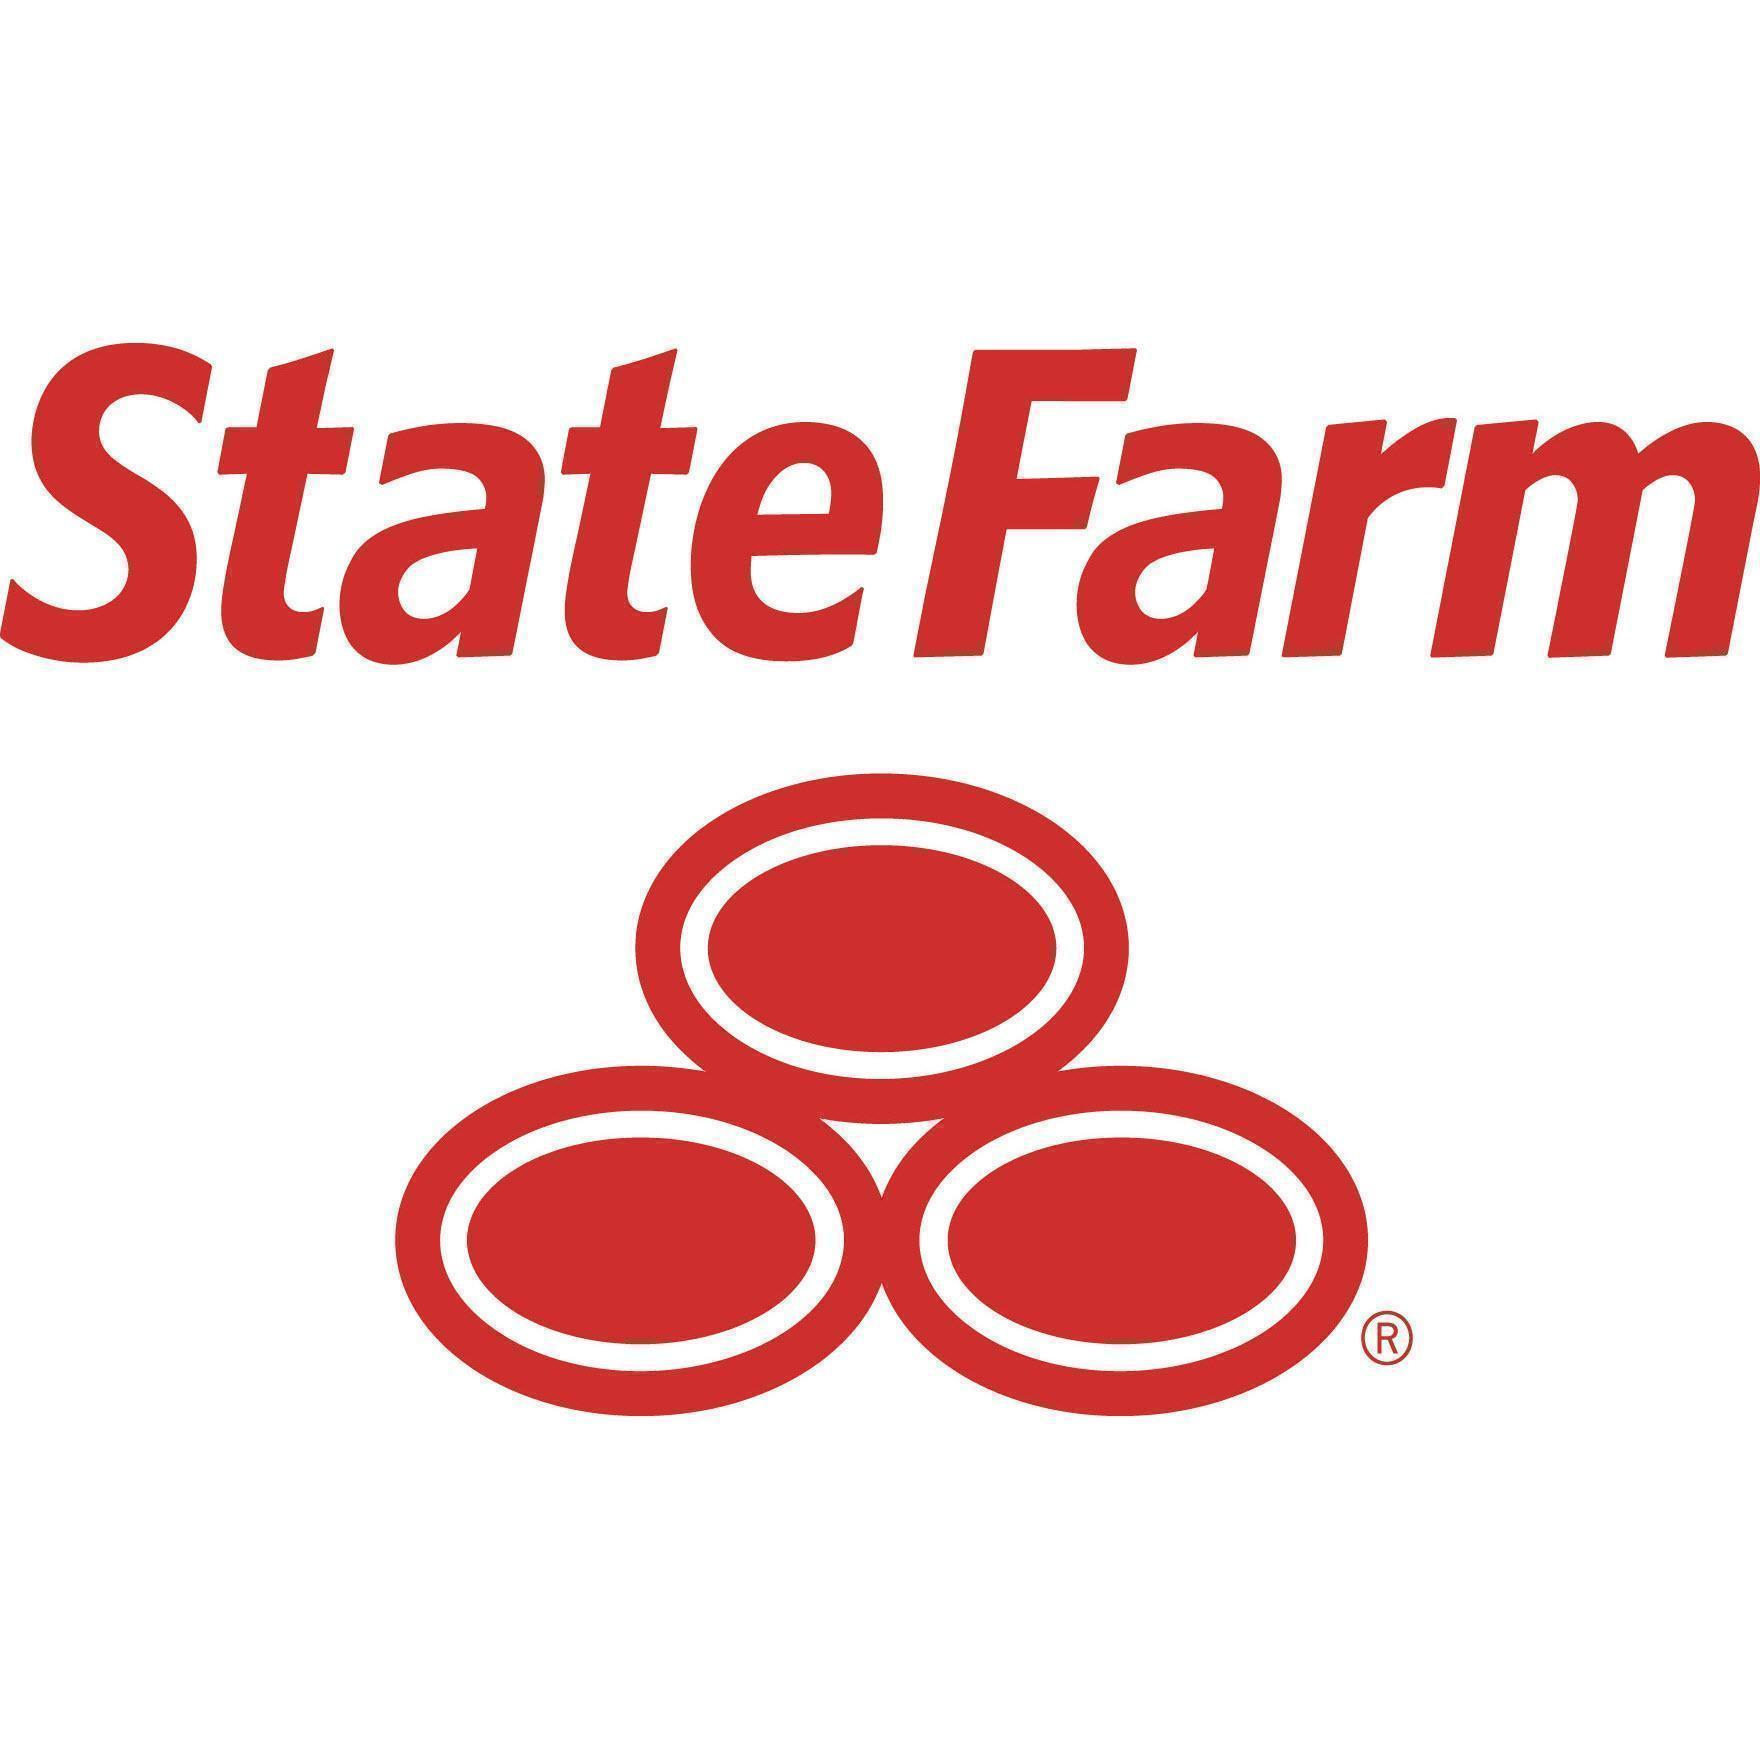 Tim Green - State Farm Insurance Agent image 2